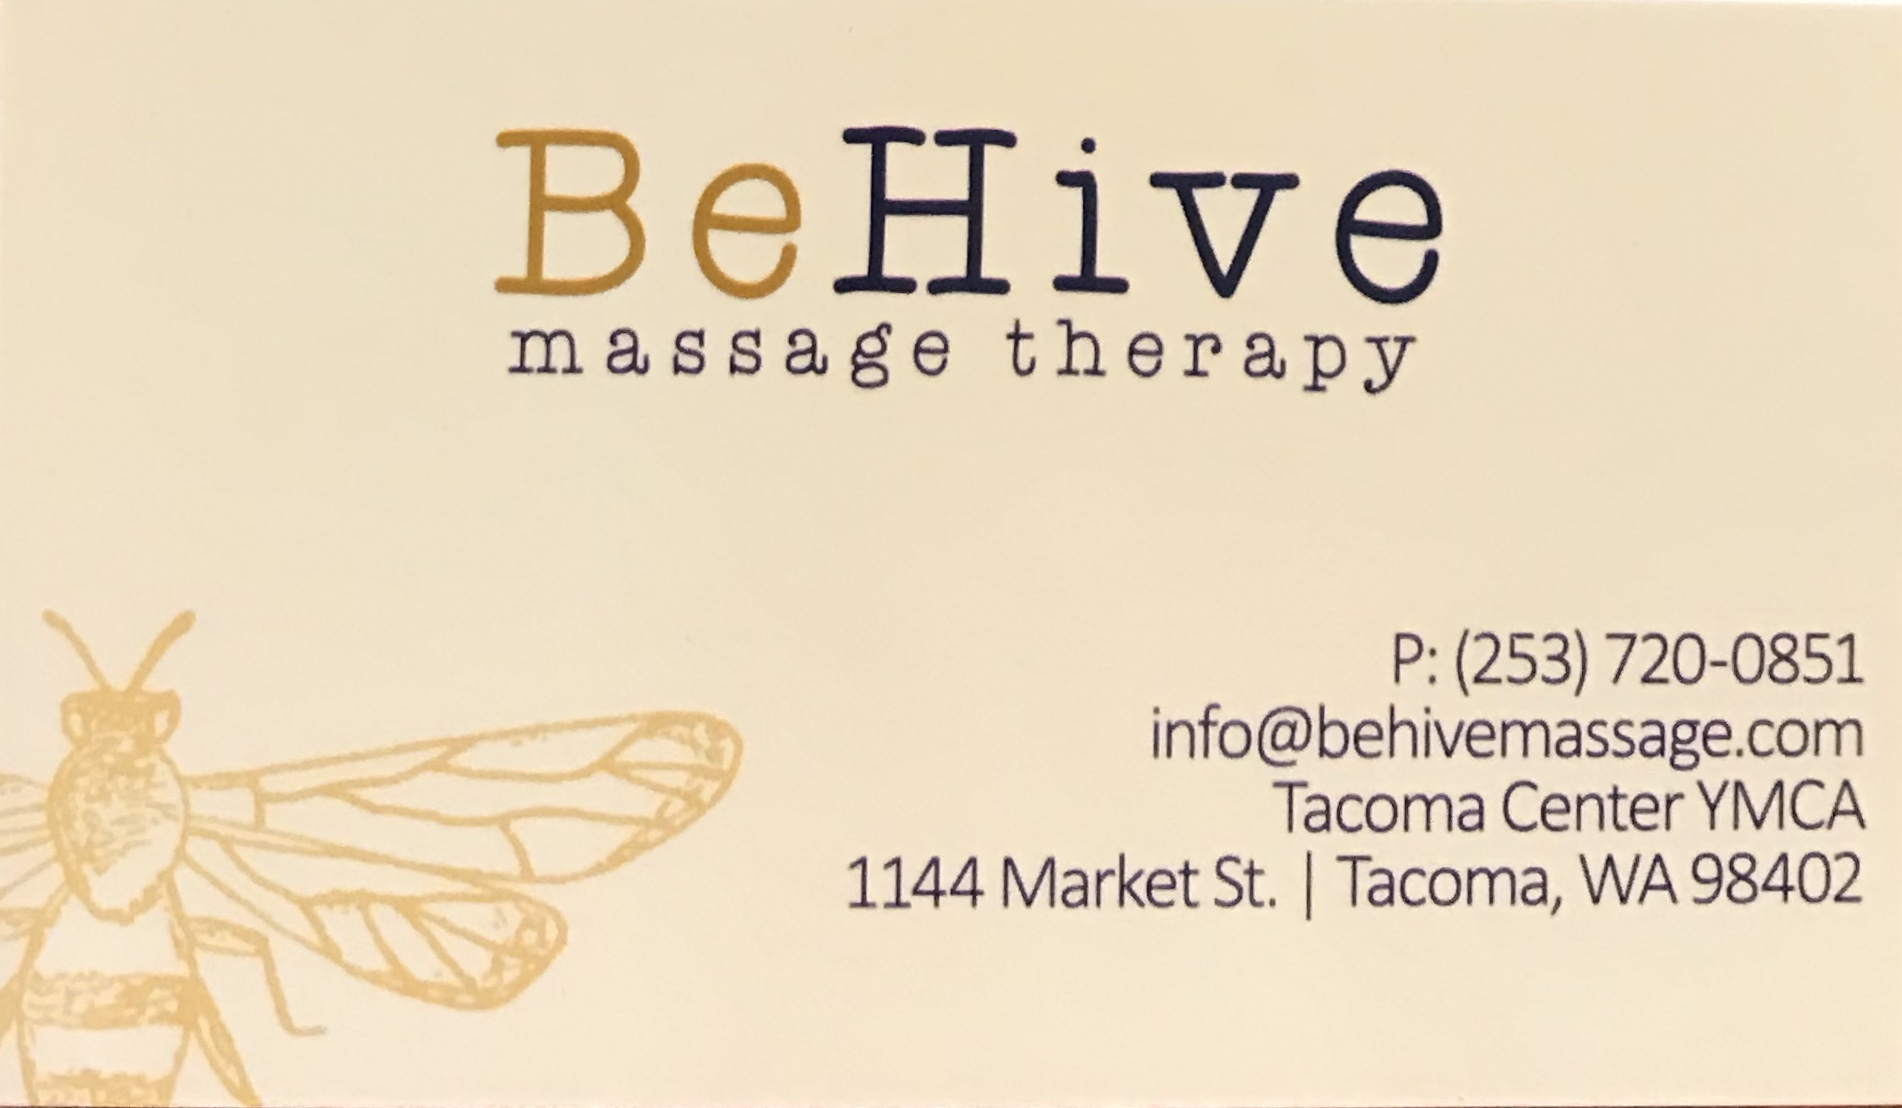 Our Partner - We would like to thank BeHive Massage Therapy who keeps us healthy. Please consider supporting BeHive with a massage visit of your own.